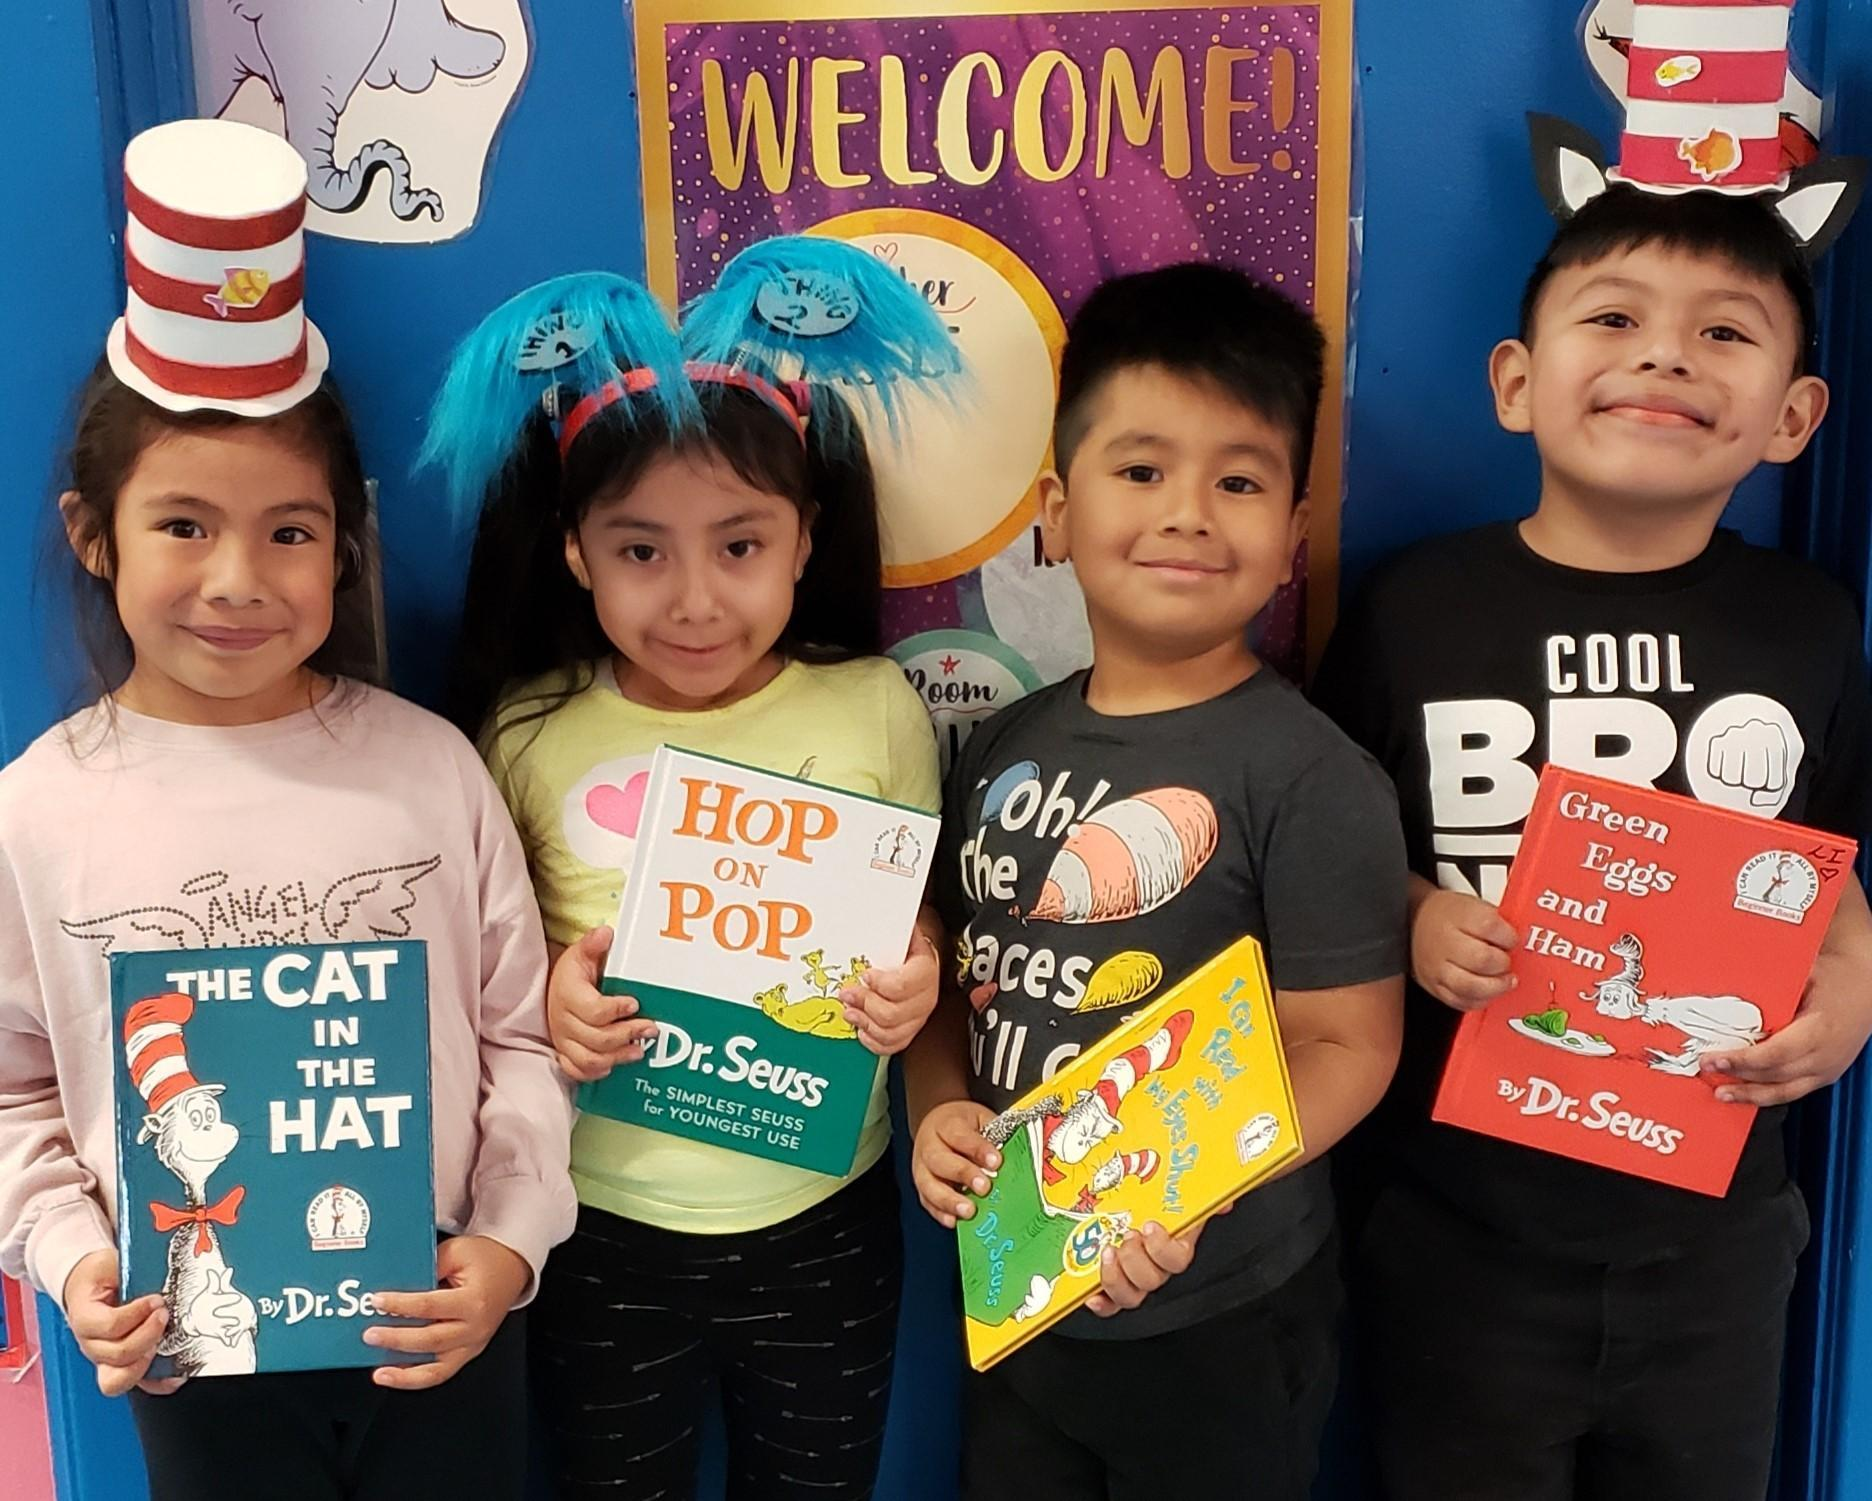 Kindergarten students wearing 'Seusical' headbands and holding books by Dr. Seuss.